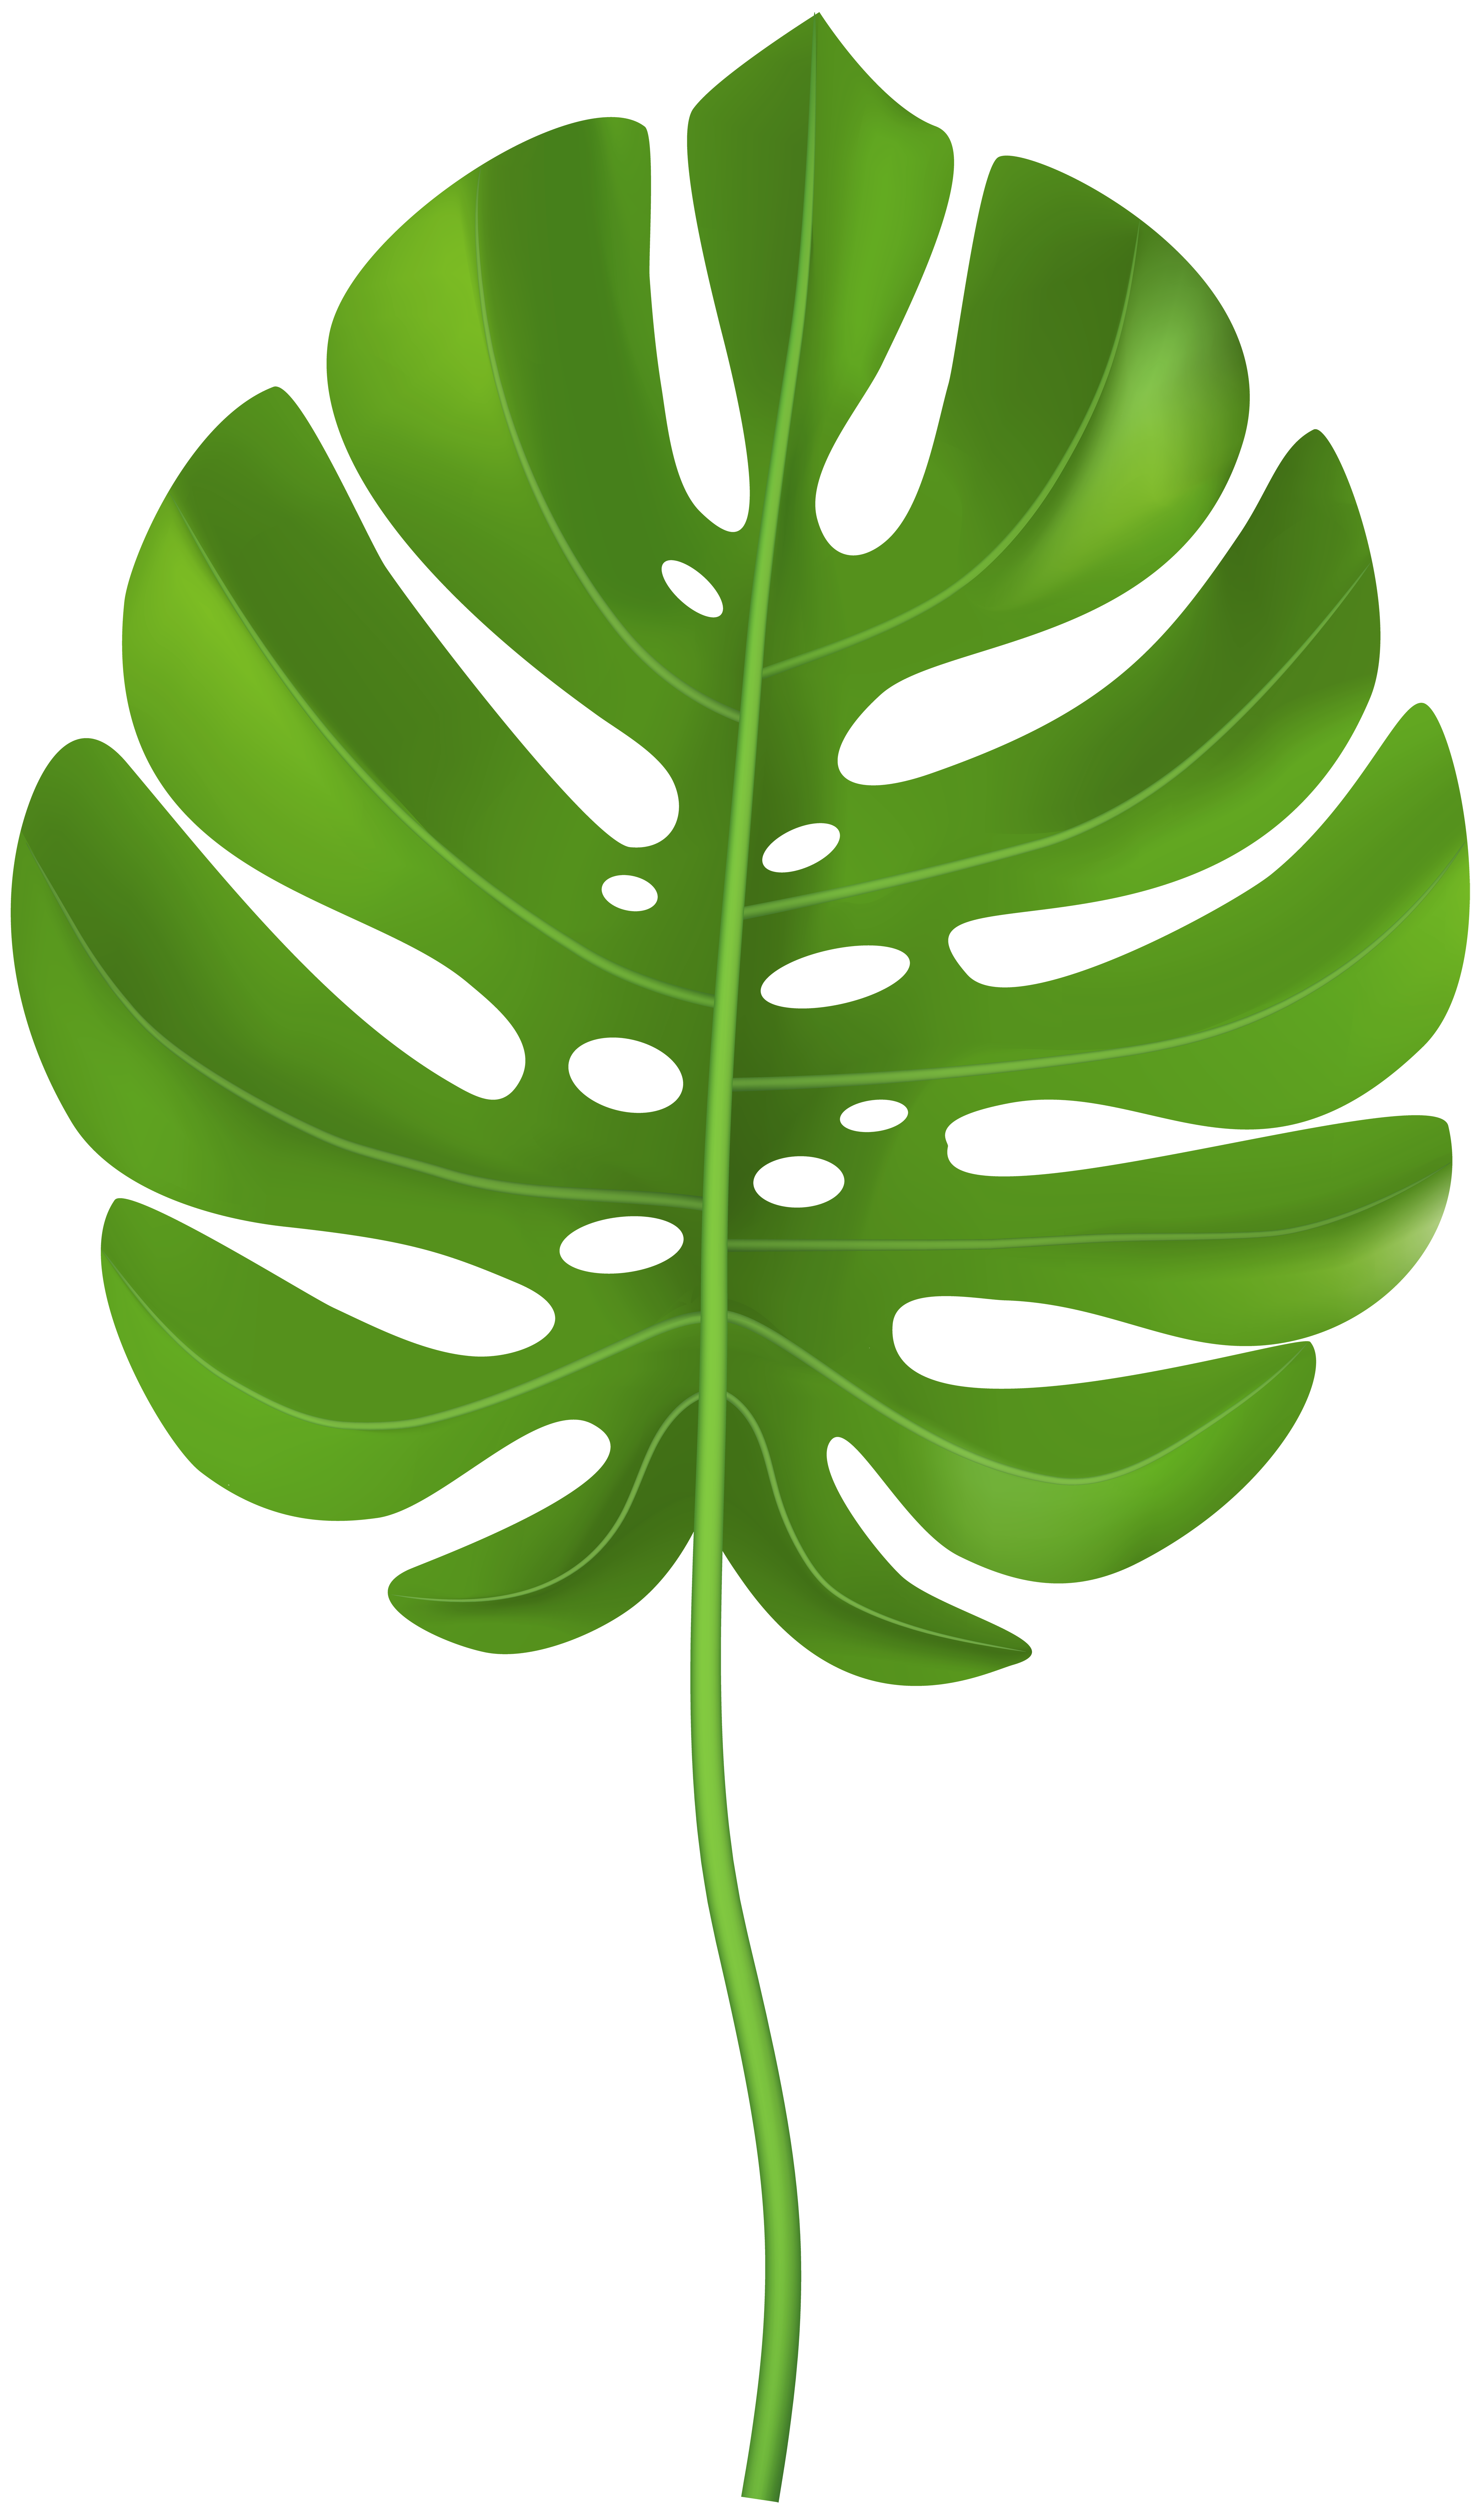 Leaves Clipart Tropical Leaves Tropical Transparent Free For Download On Webstockreview 2021 Alibaba.com offers 5,103 animated leaves products. webstockreview